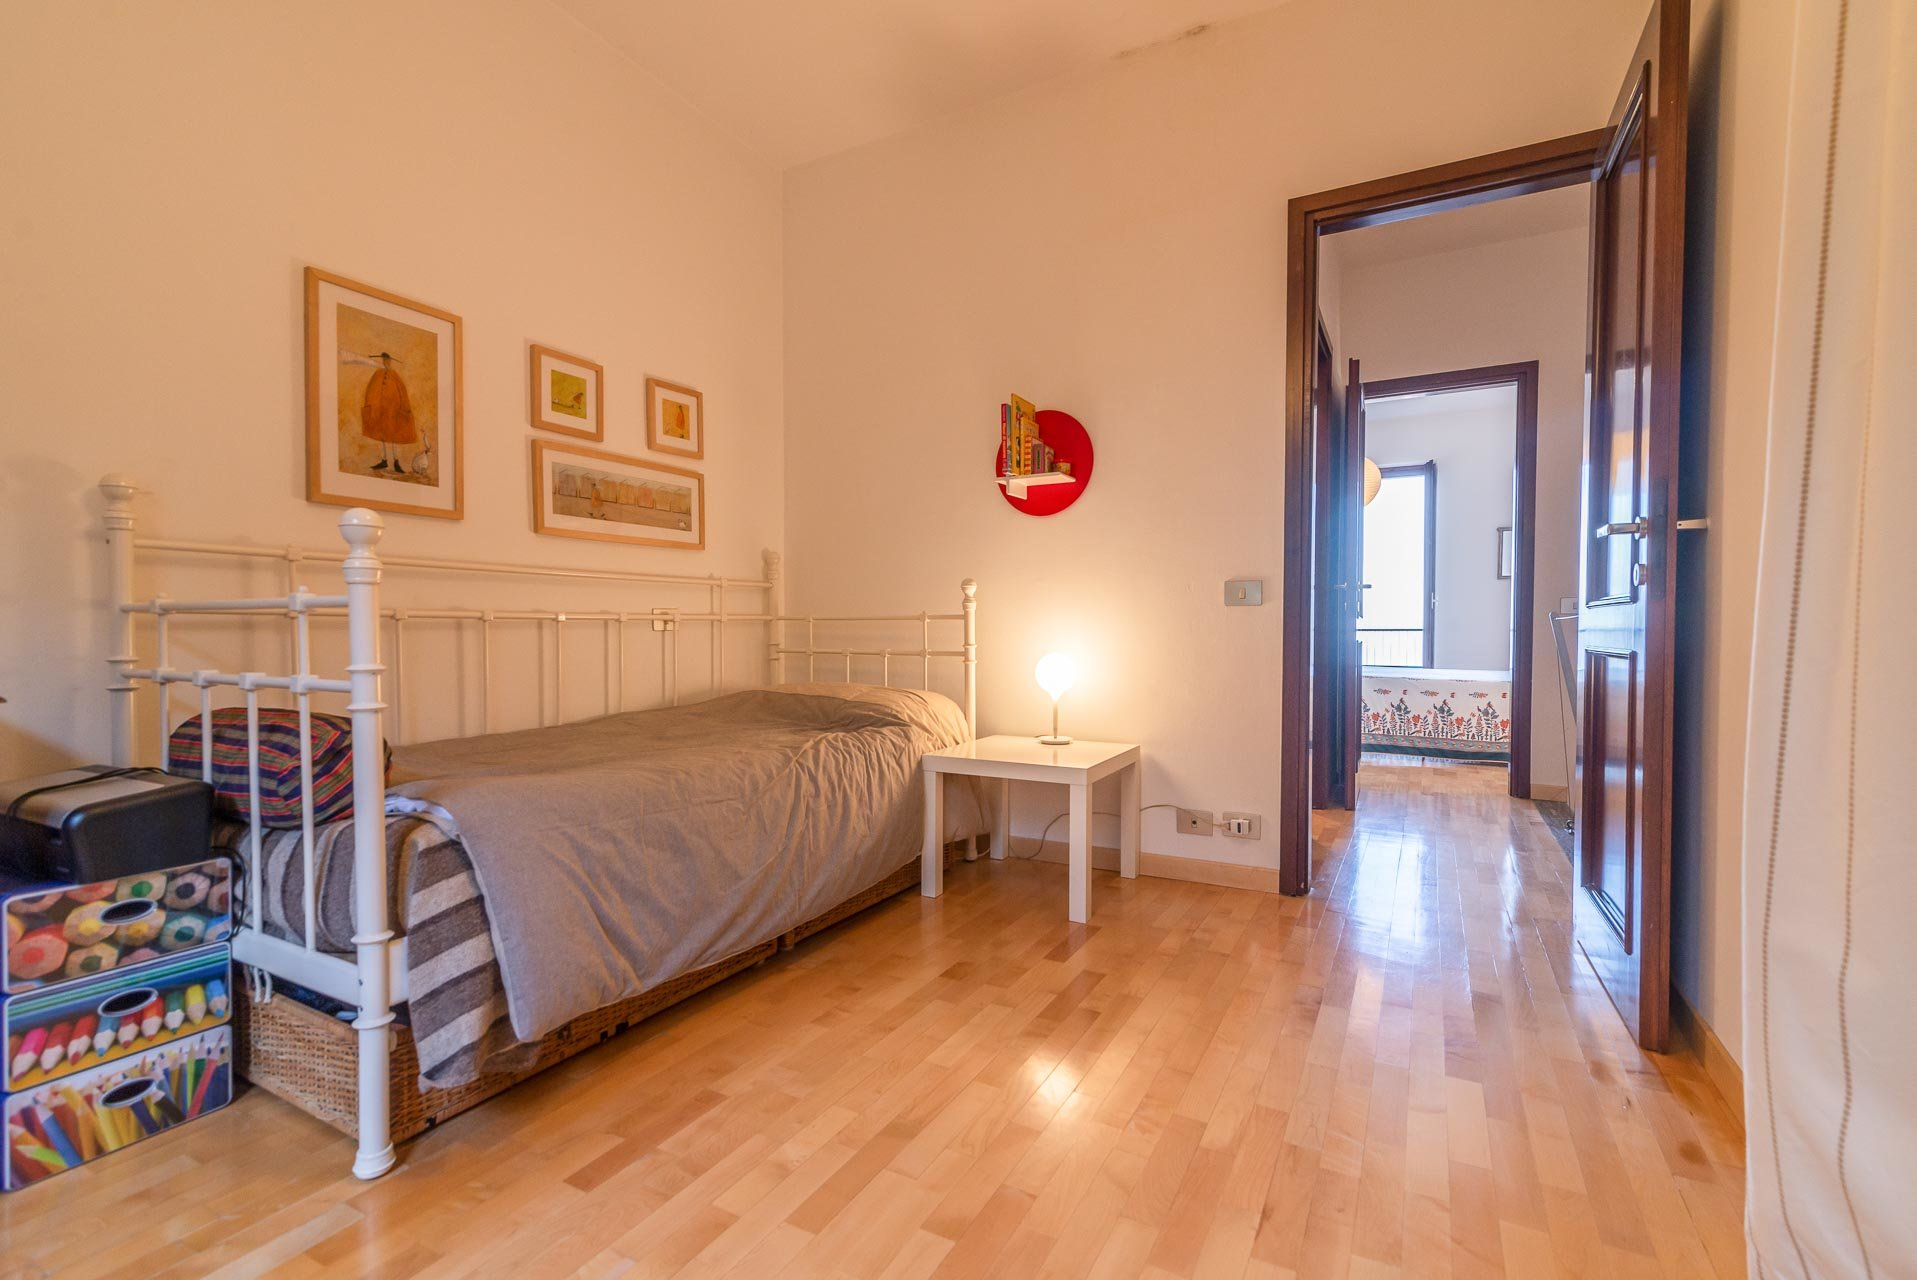 Apartment for sale in Stresa in a residence - bedroom